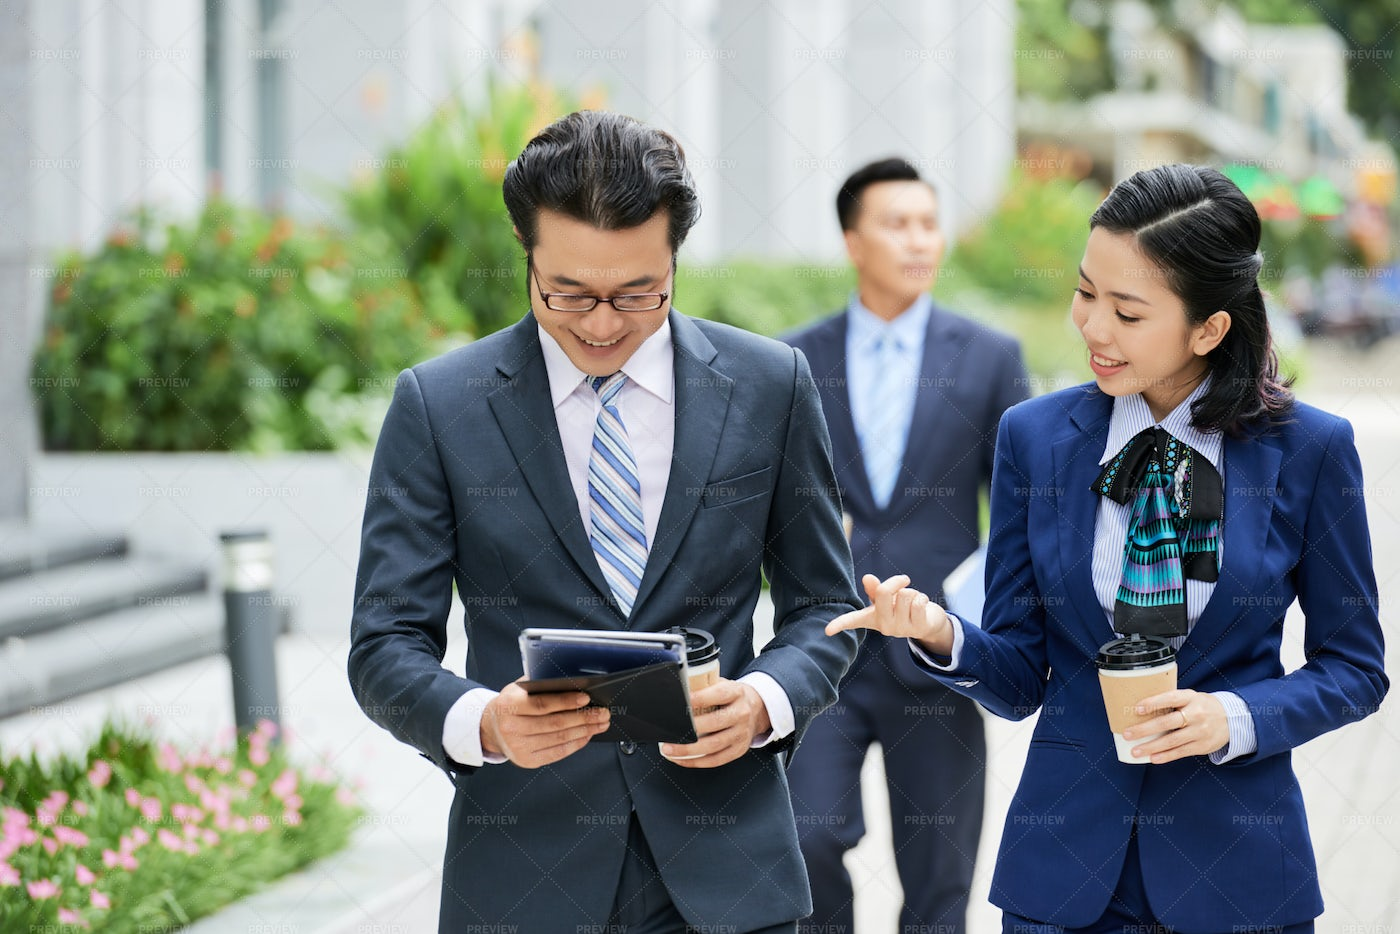 Business People Discussing Online Work: Stock Photos